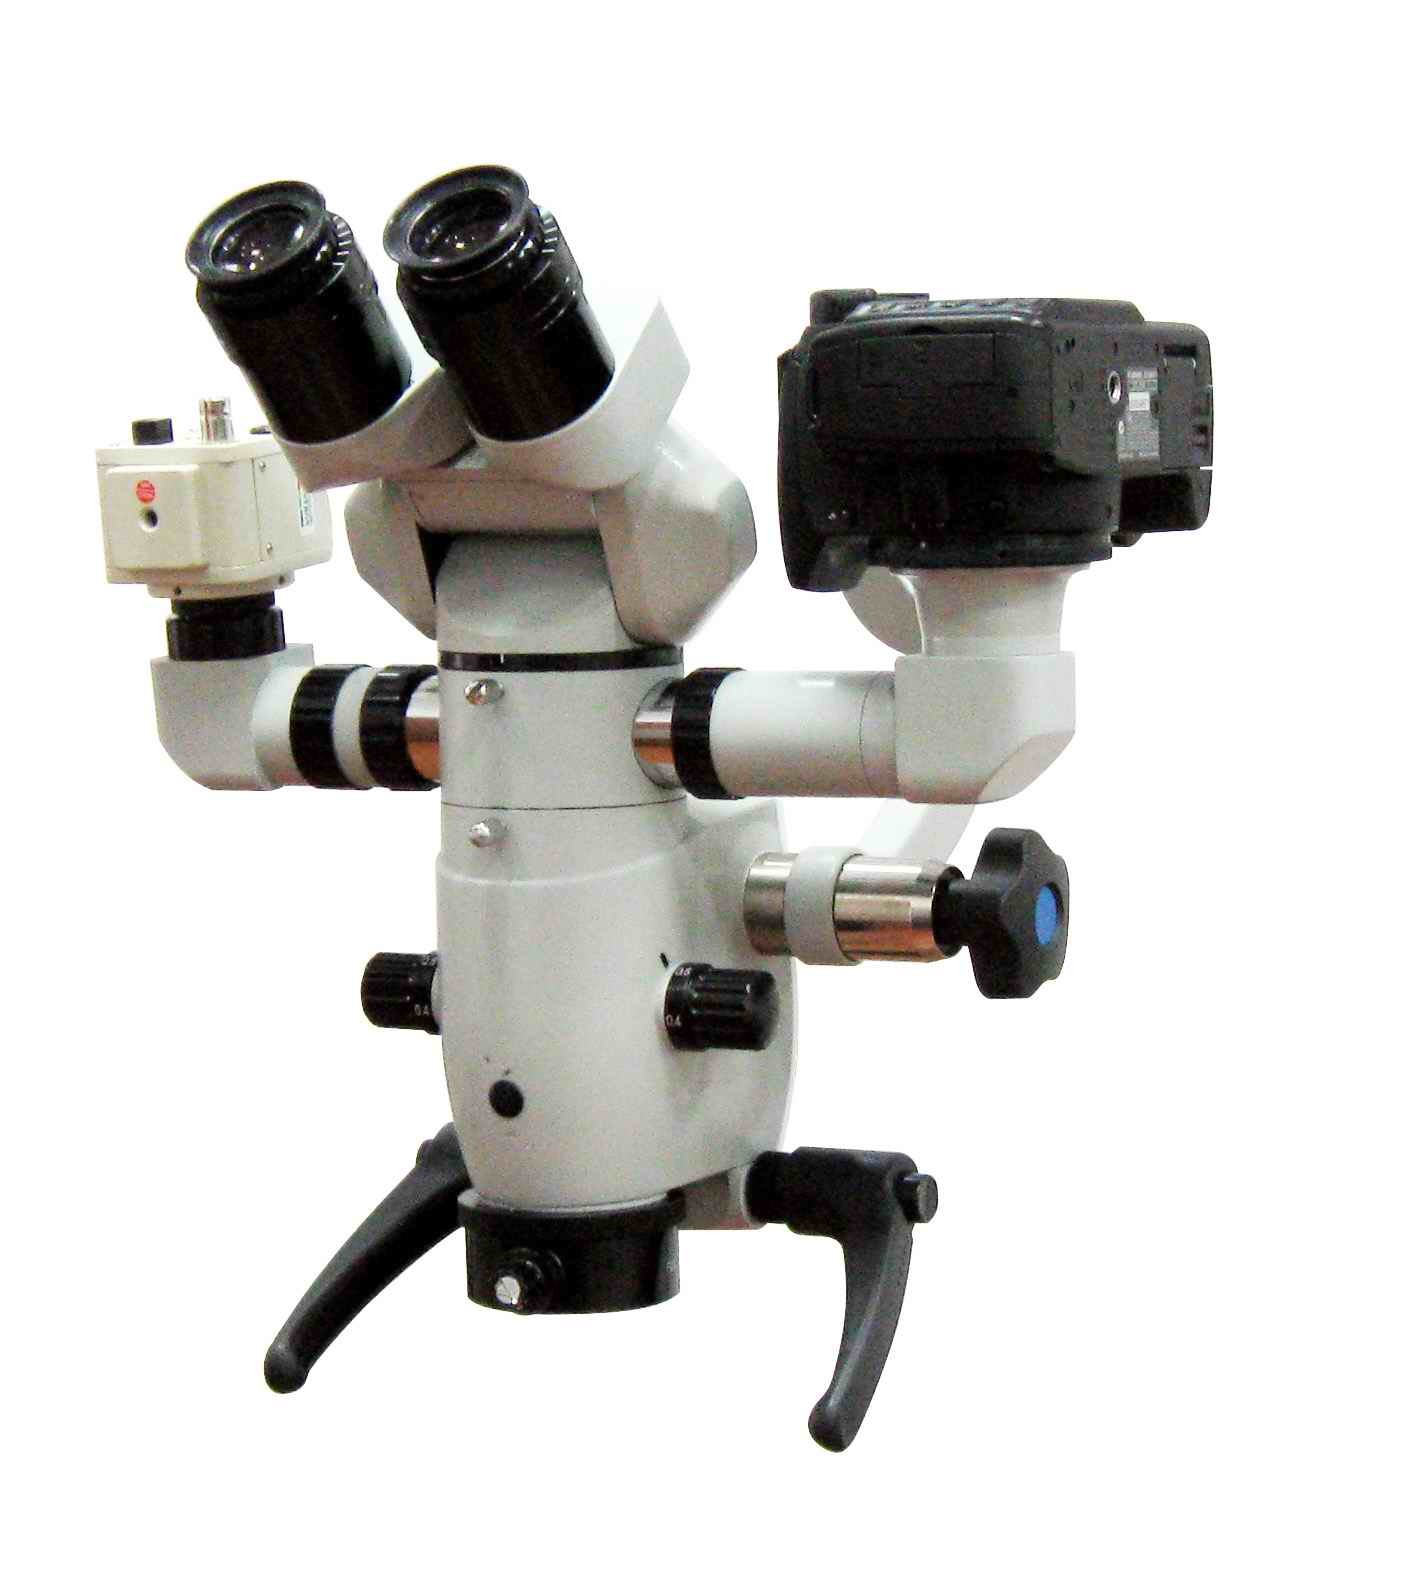 DSLR Microscope Adapter (OMS2300)